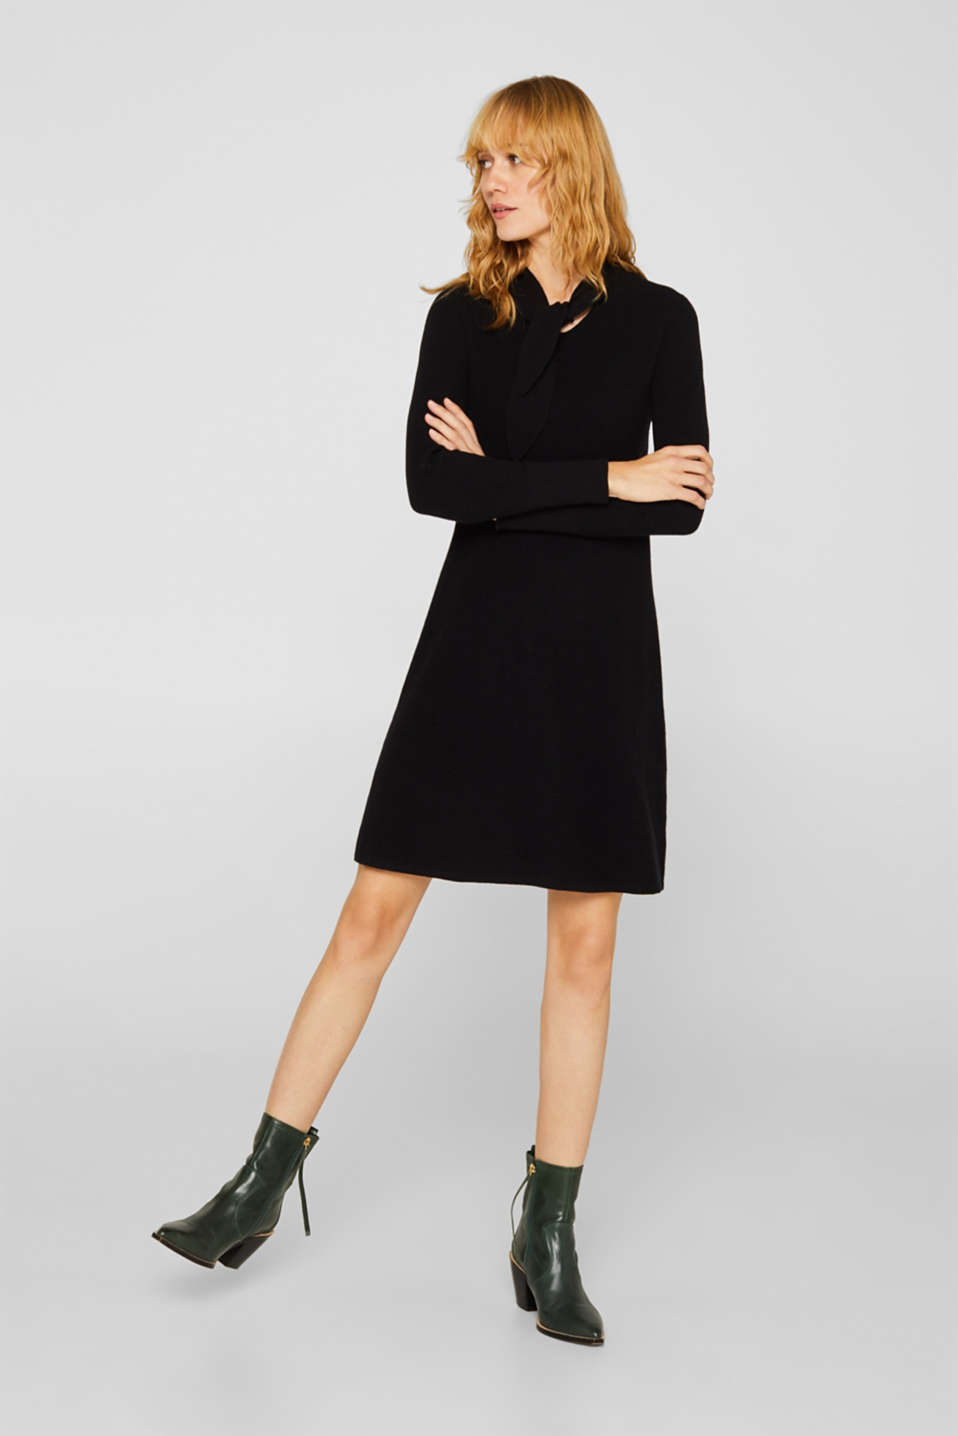 Esprit - With wool: knit dress with a pussycat bow